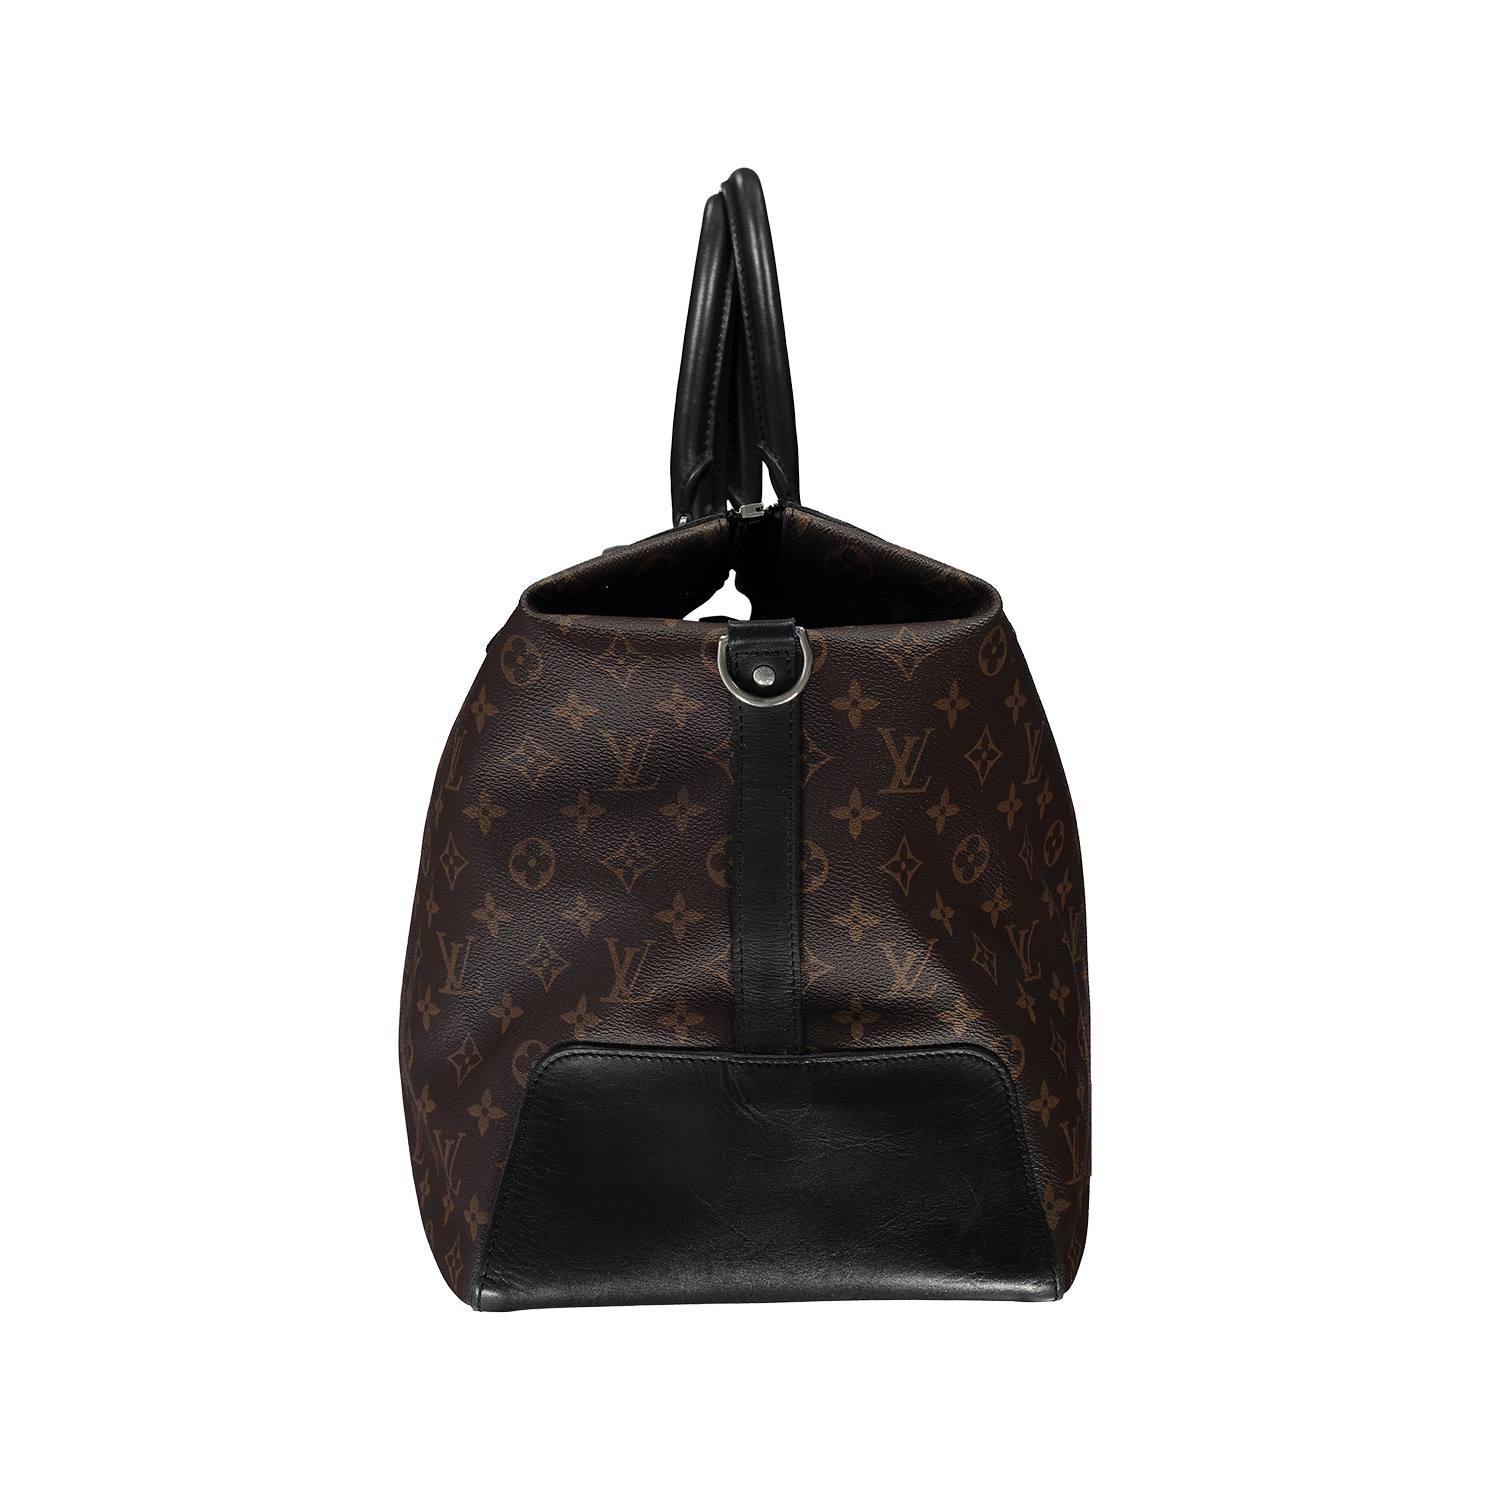 Louis Vuitton NON DISPONIBLE - Louis Vuitton sac souple Neo Greenwich en toile Monogram Macassar